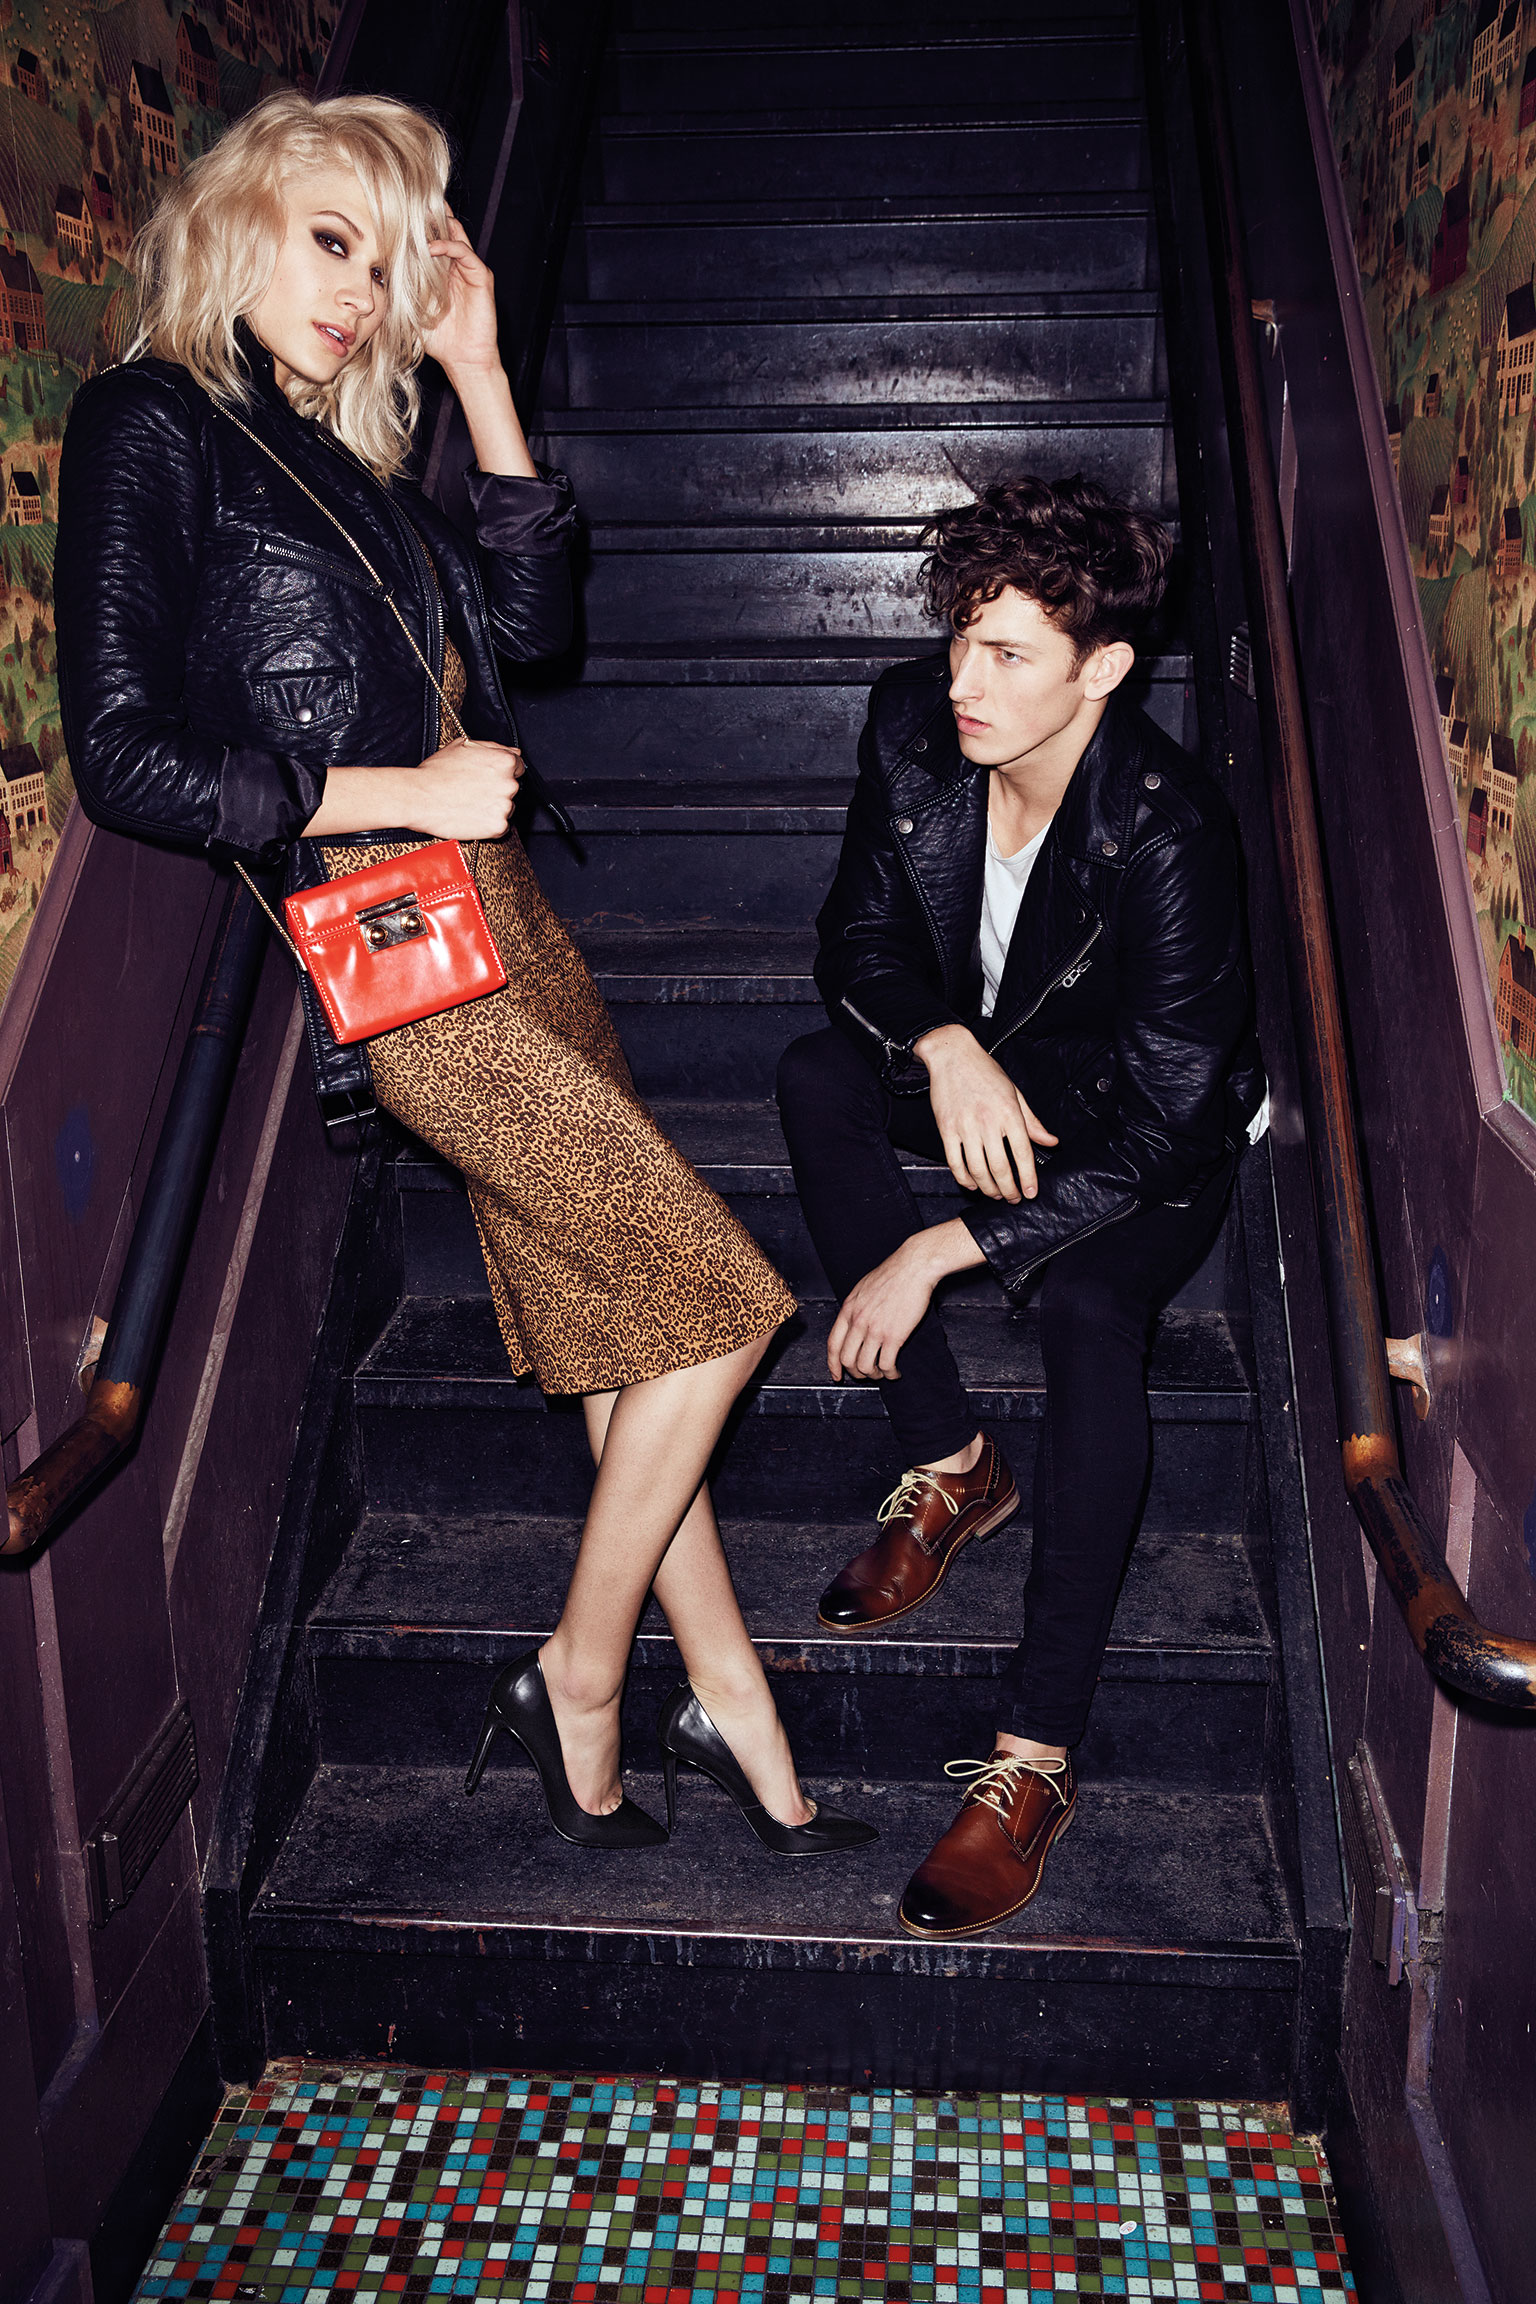 STEVE-MADDEN-SS15-CAMPAIGN-STYLED-BY-ANDREA-MESSIER-CUOMO-12.jpg